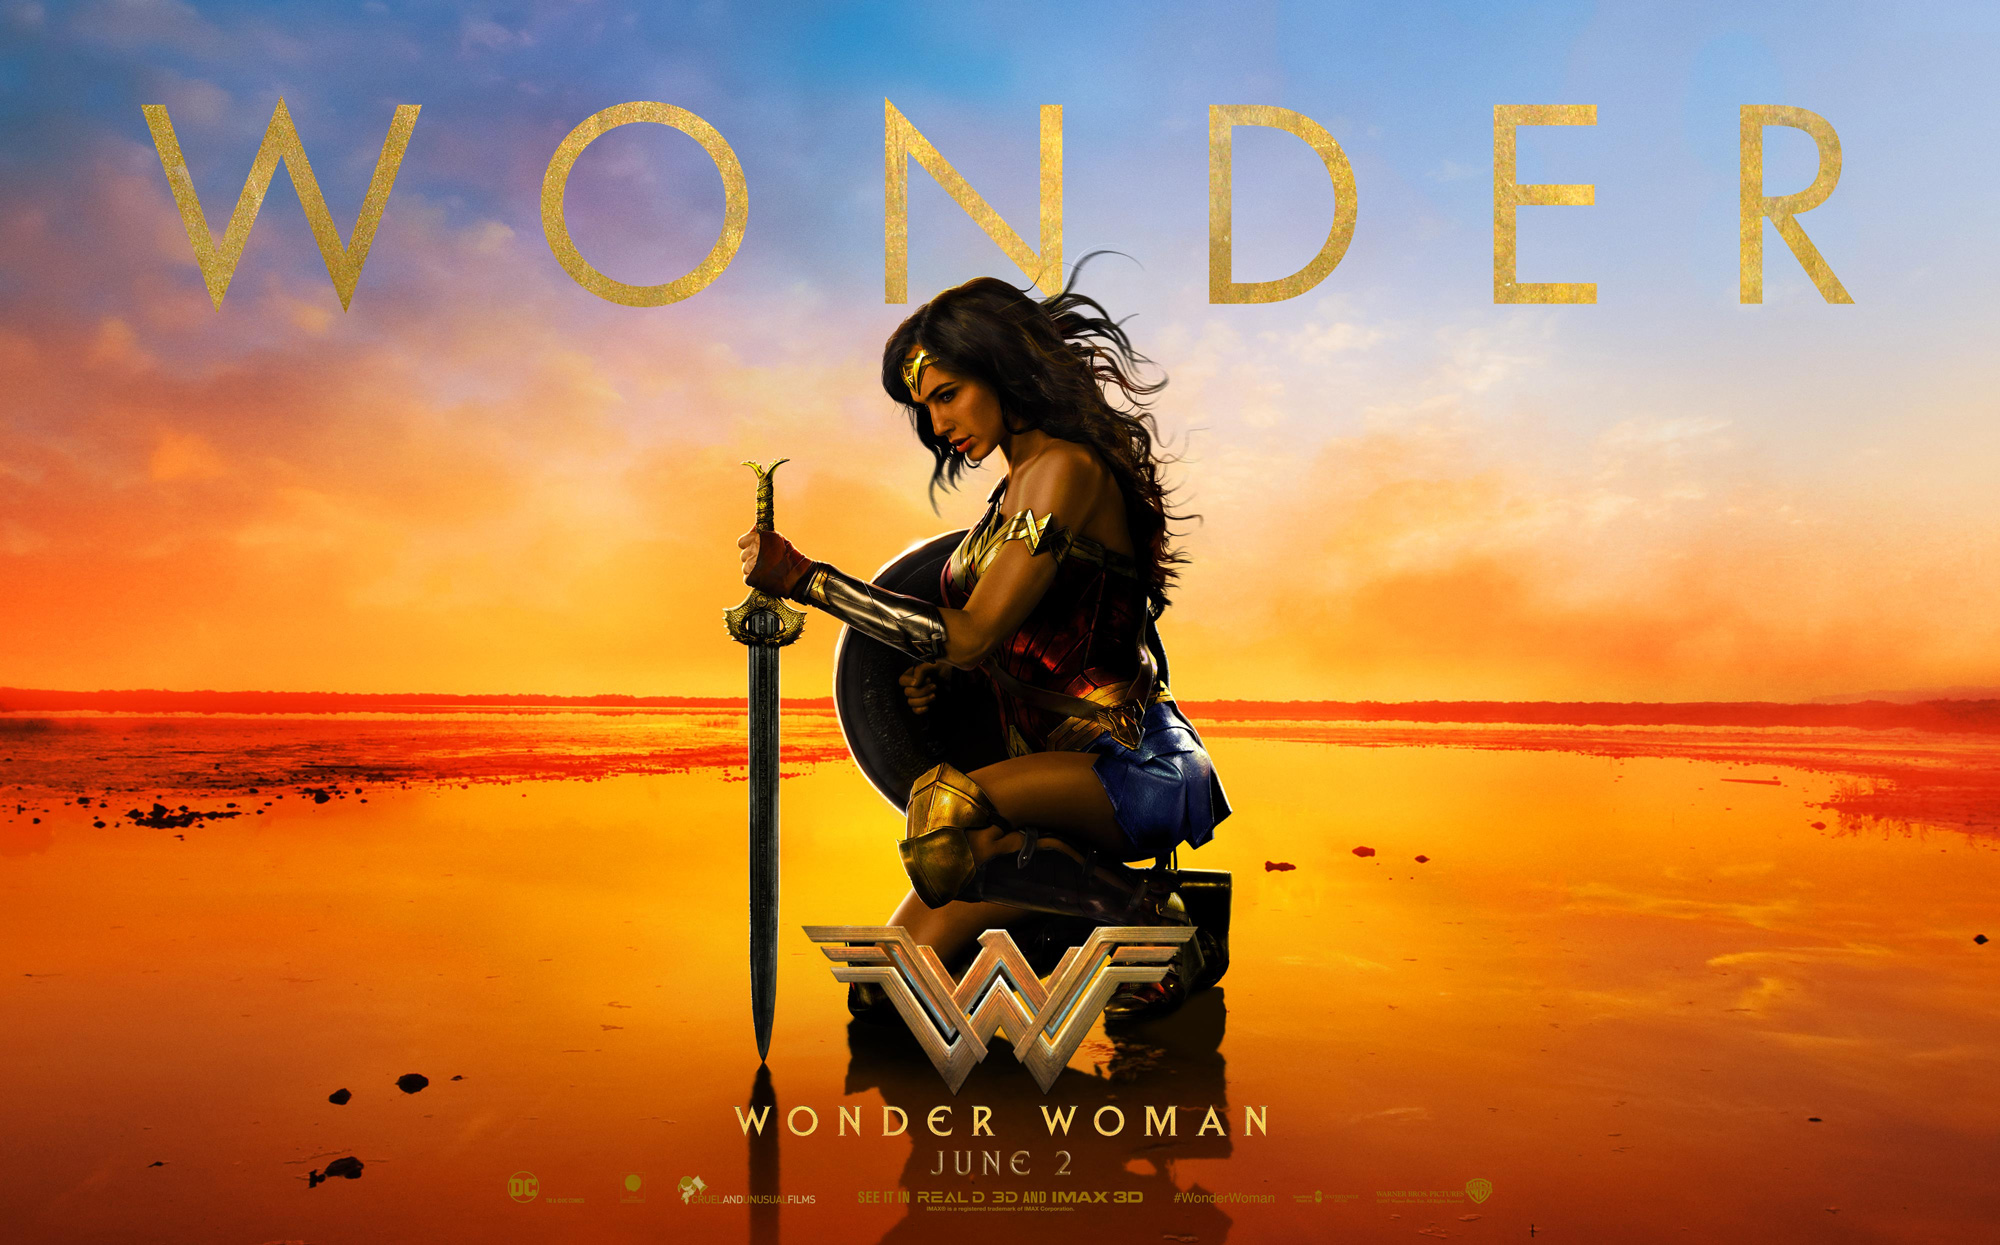 https://i2.wp.com/teaser-trailer.com/wp-content/uploads/gal-Gadot-Wonder-Woman-movie-June-2017.jpg?ssl=1